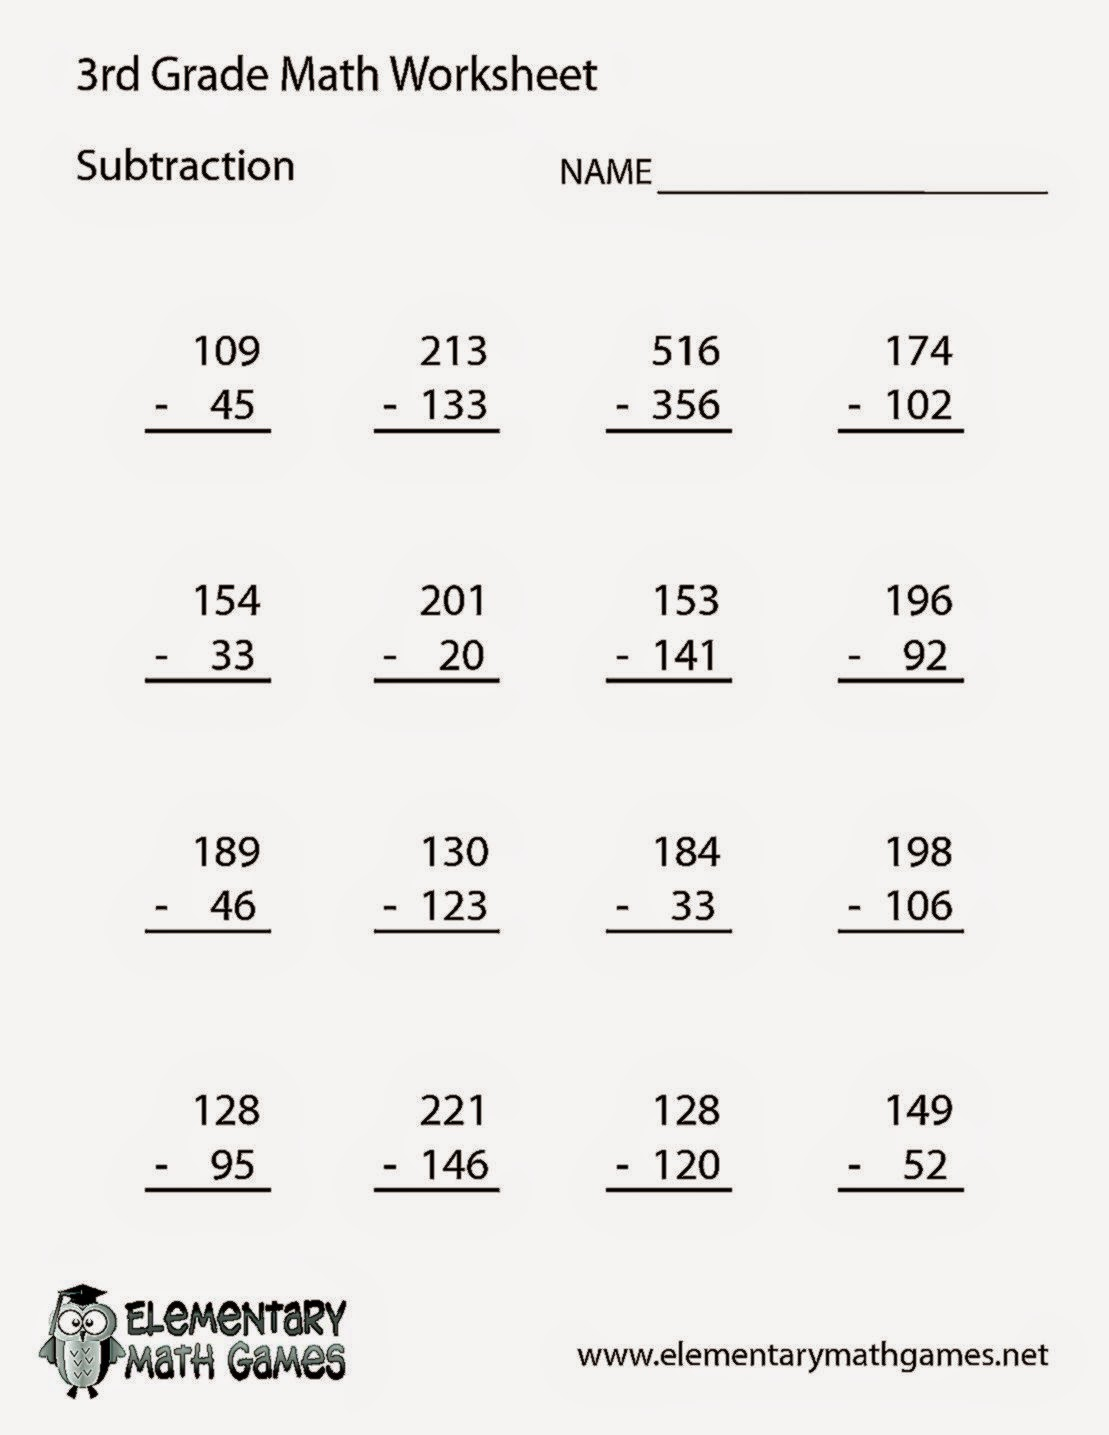 Worksheet Addition Worksheets 3rd Grade 3rd grade math worksheets free coloring sheet 7th worksheet games